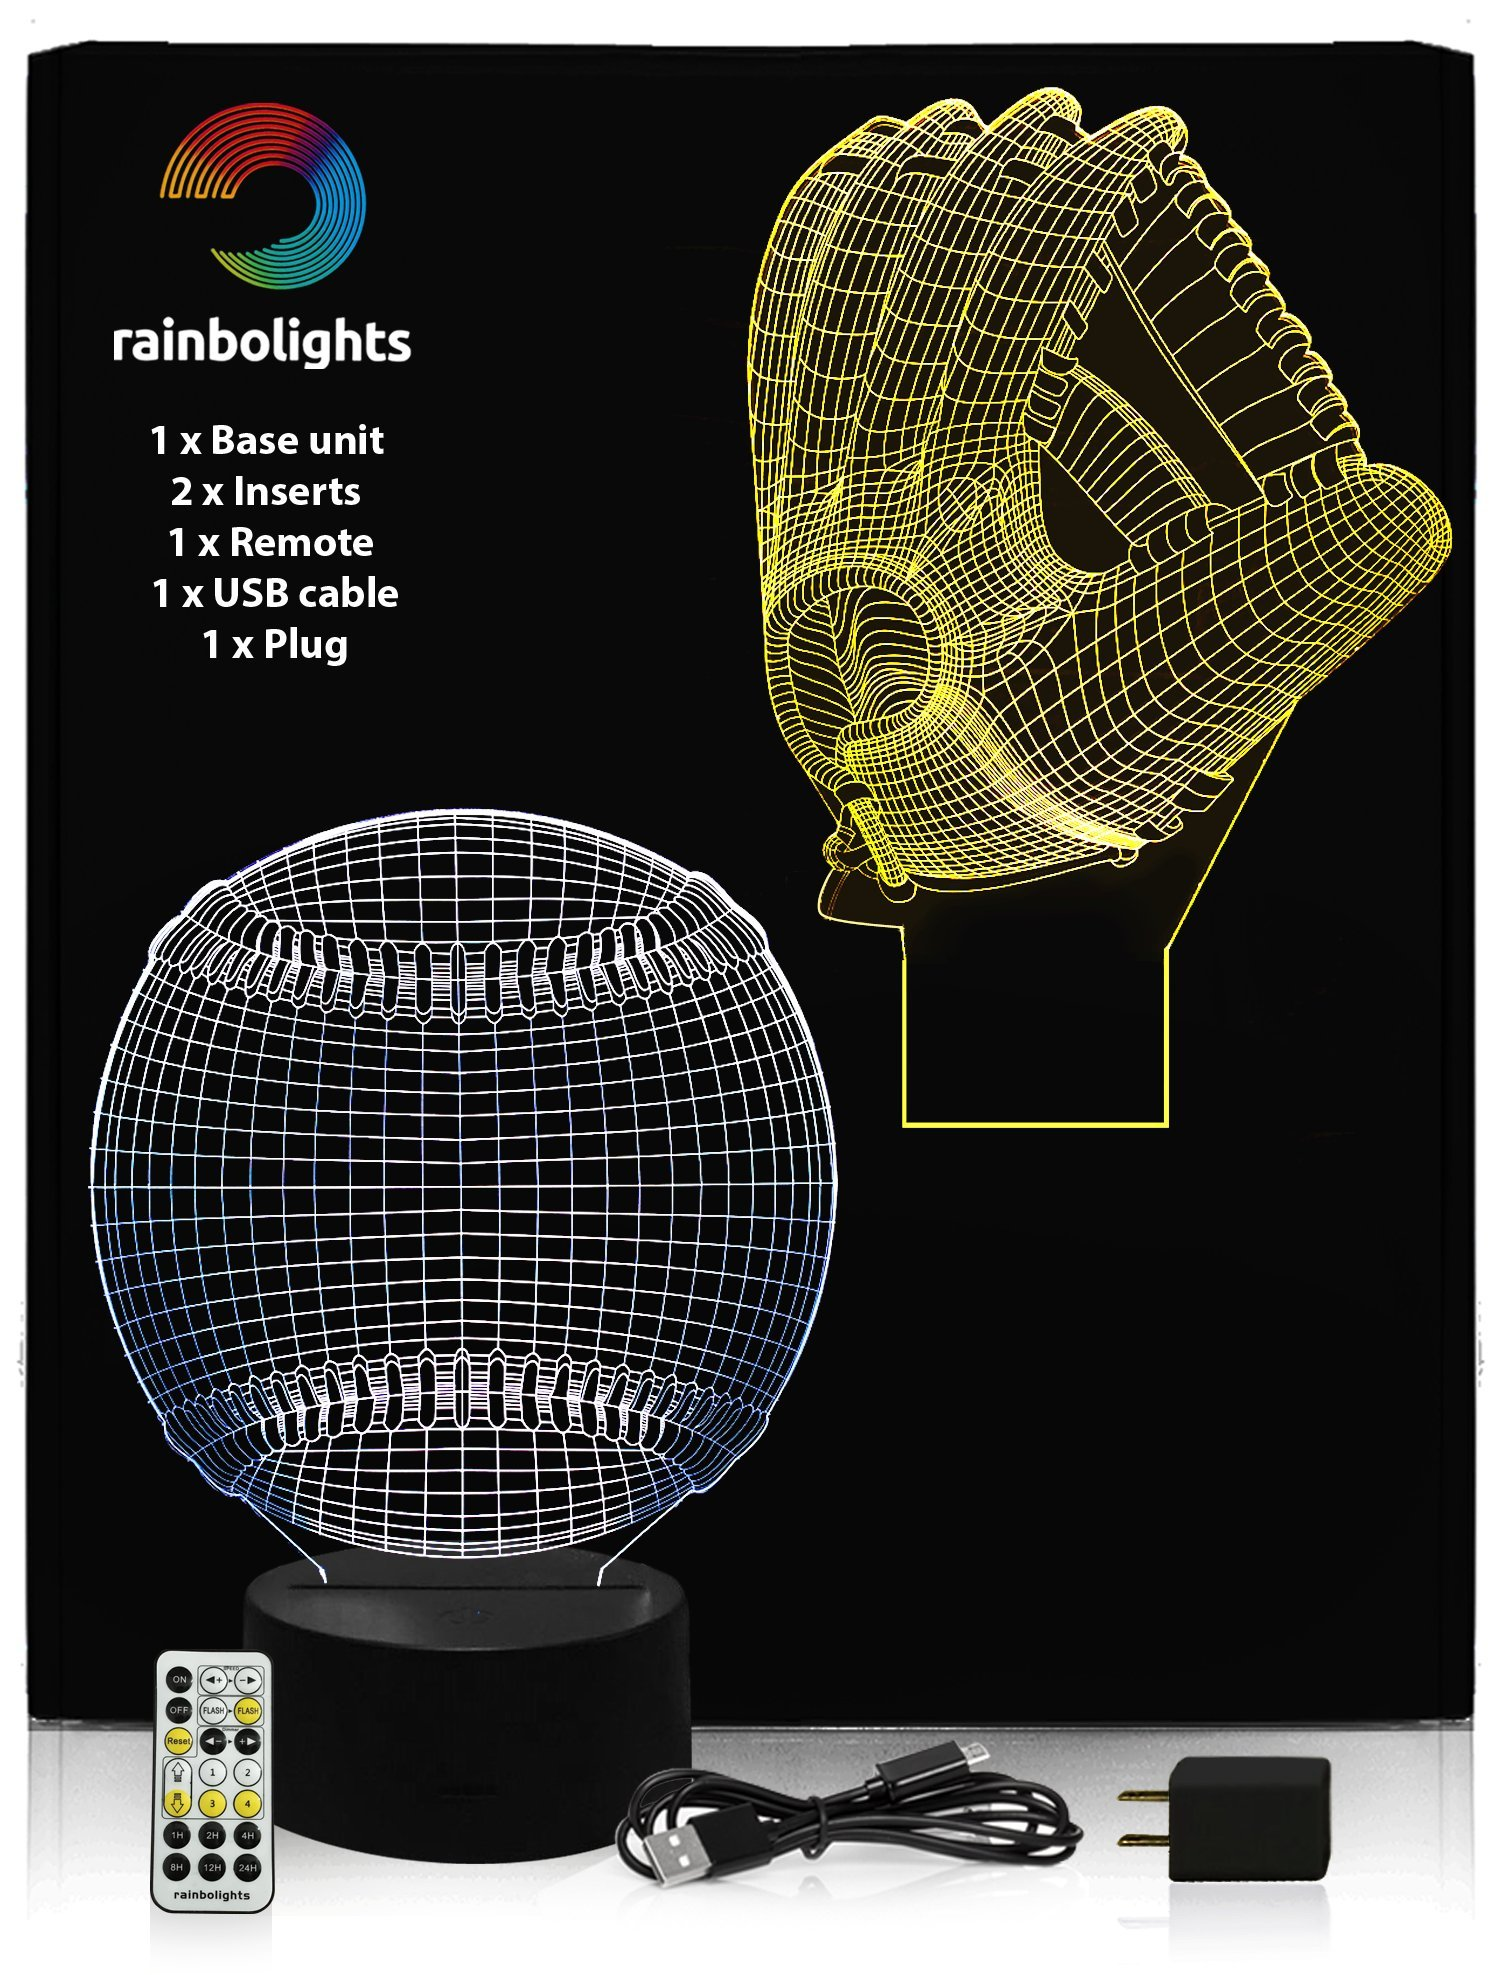 BASEBALL GIFTS 3D Illusion Night Light BASEBALL & BASEBALL GLOVE- 2 Designs in 1 box- Includes REMOTE CONTROLLER A Great Gift for Men Dad Boys or Adults A Great Gift Set inc Plug by rainbolights